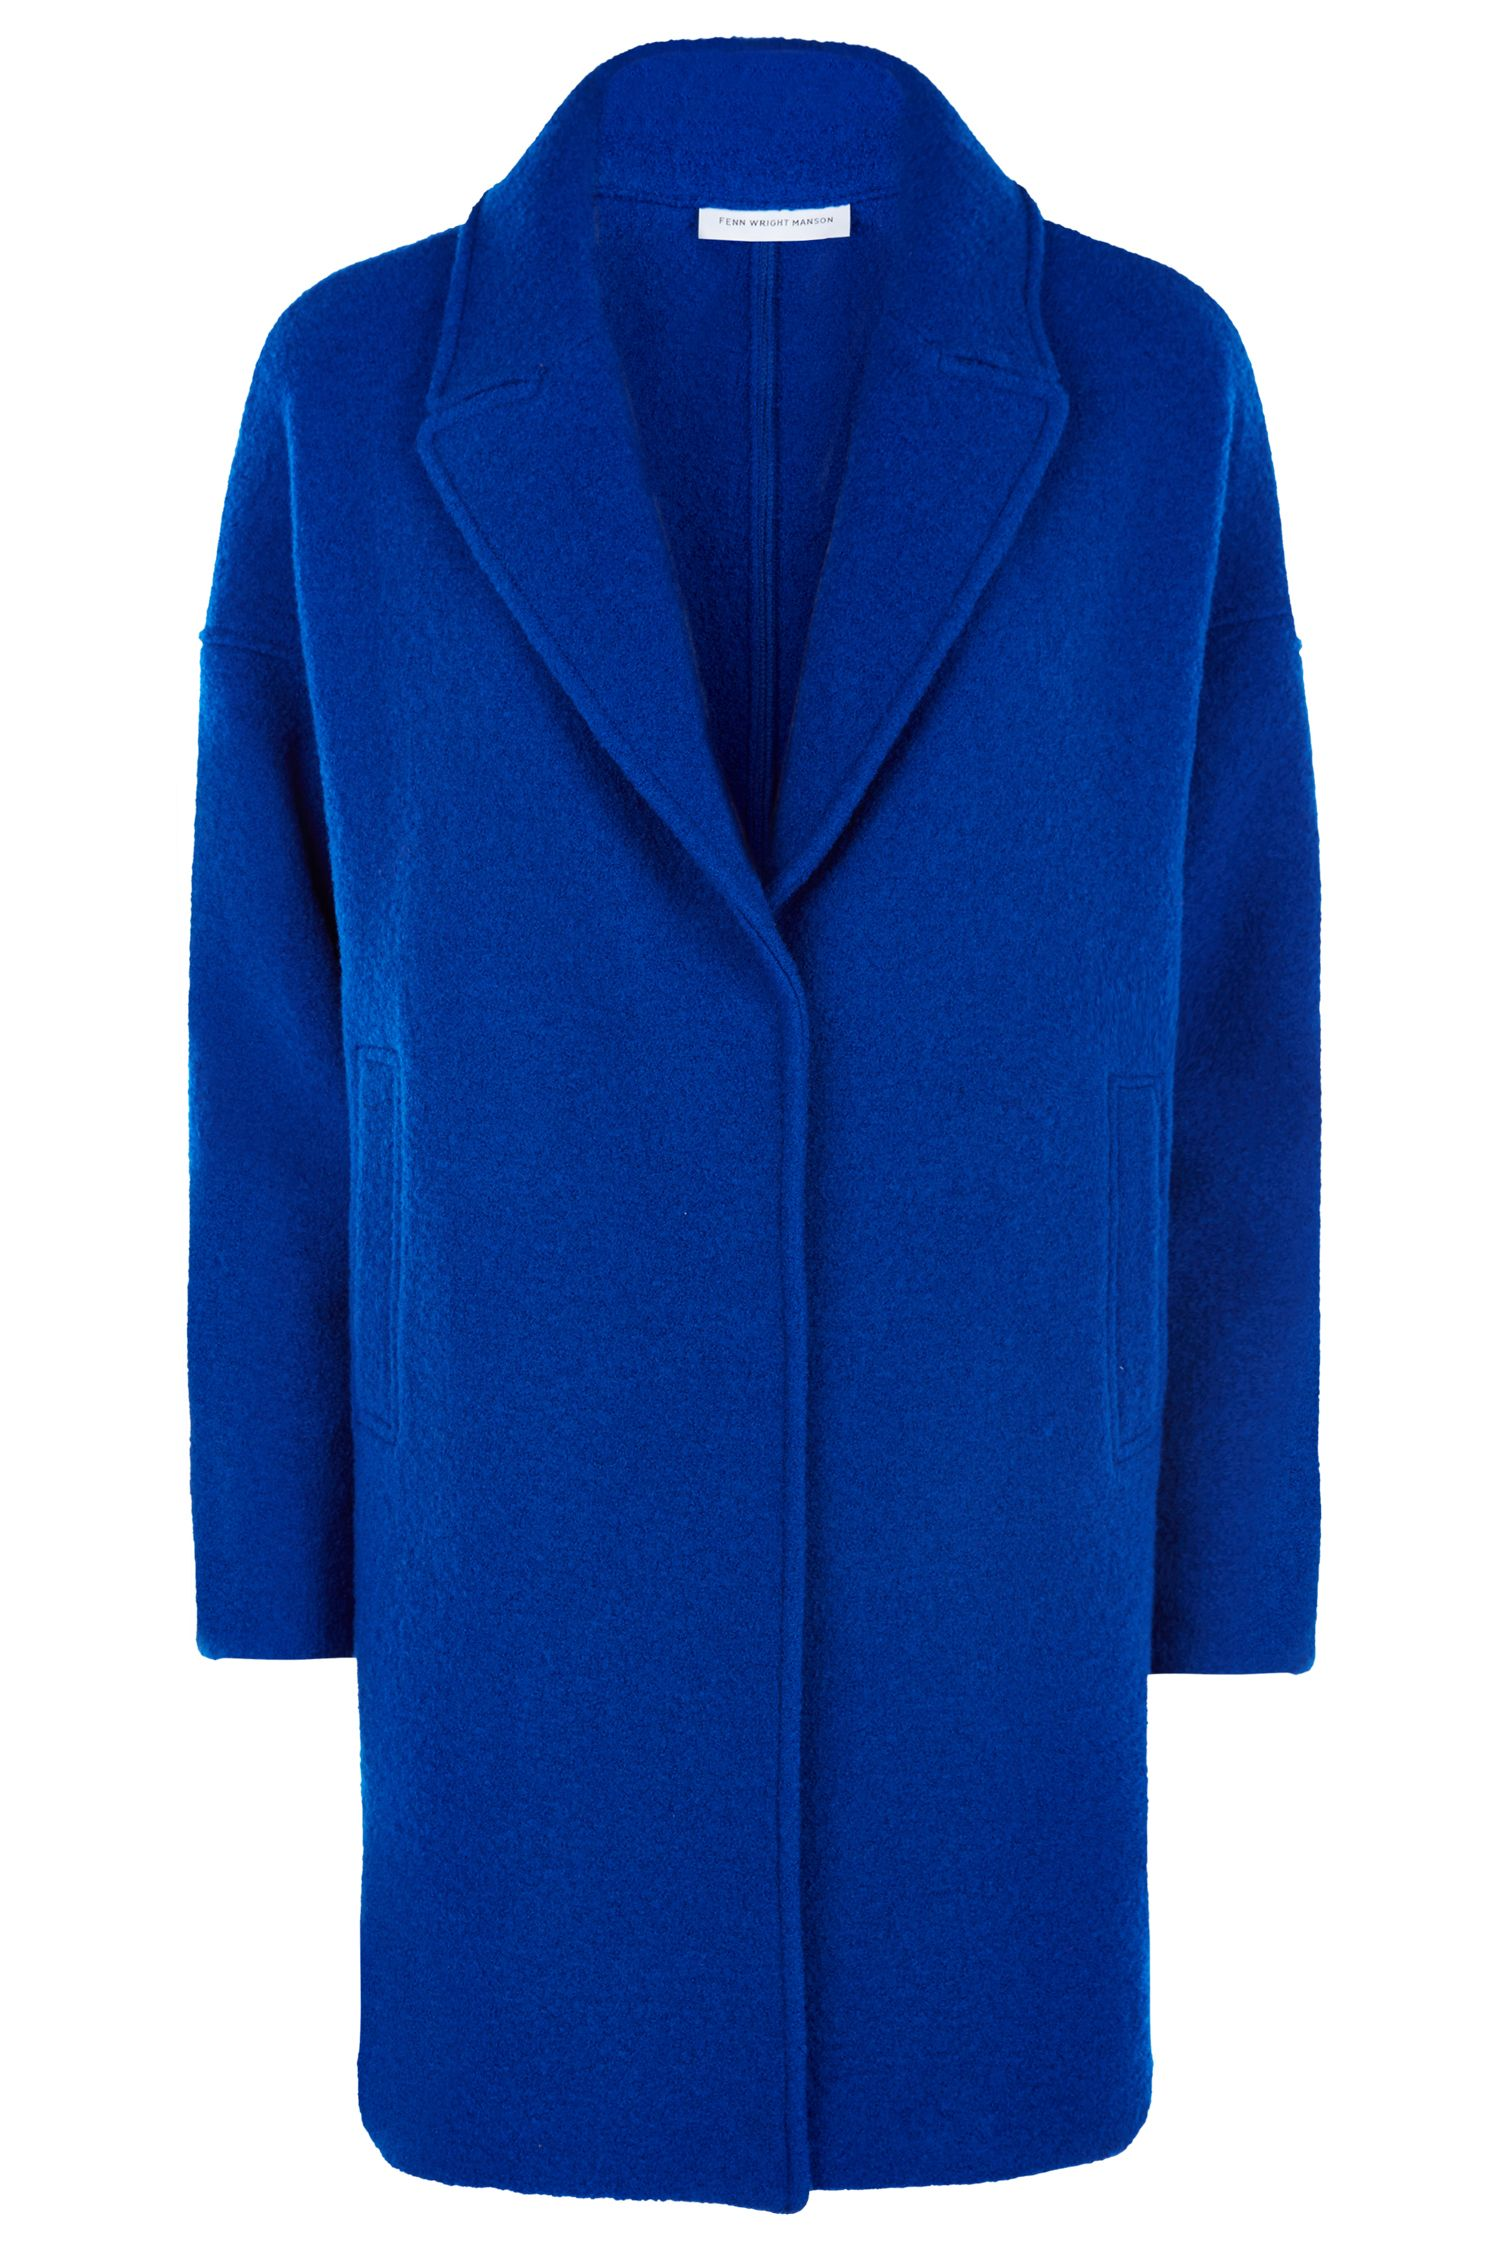 Fenn Wright Manson Helios Coat, Blue